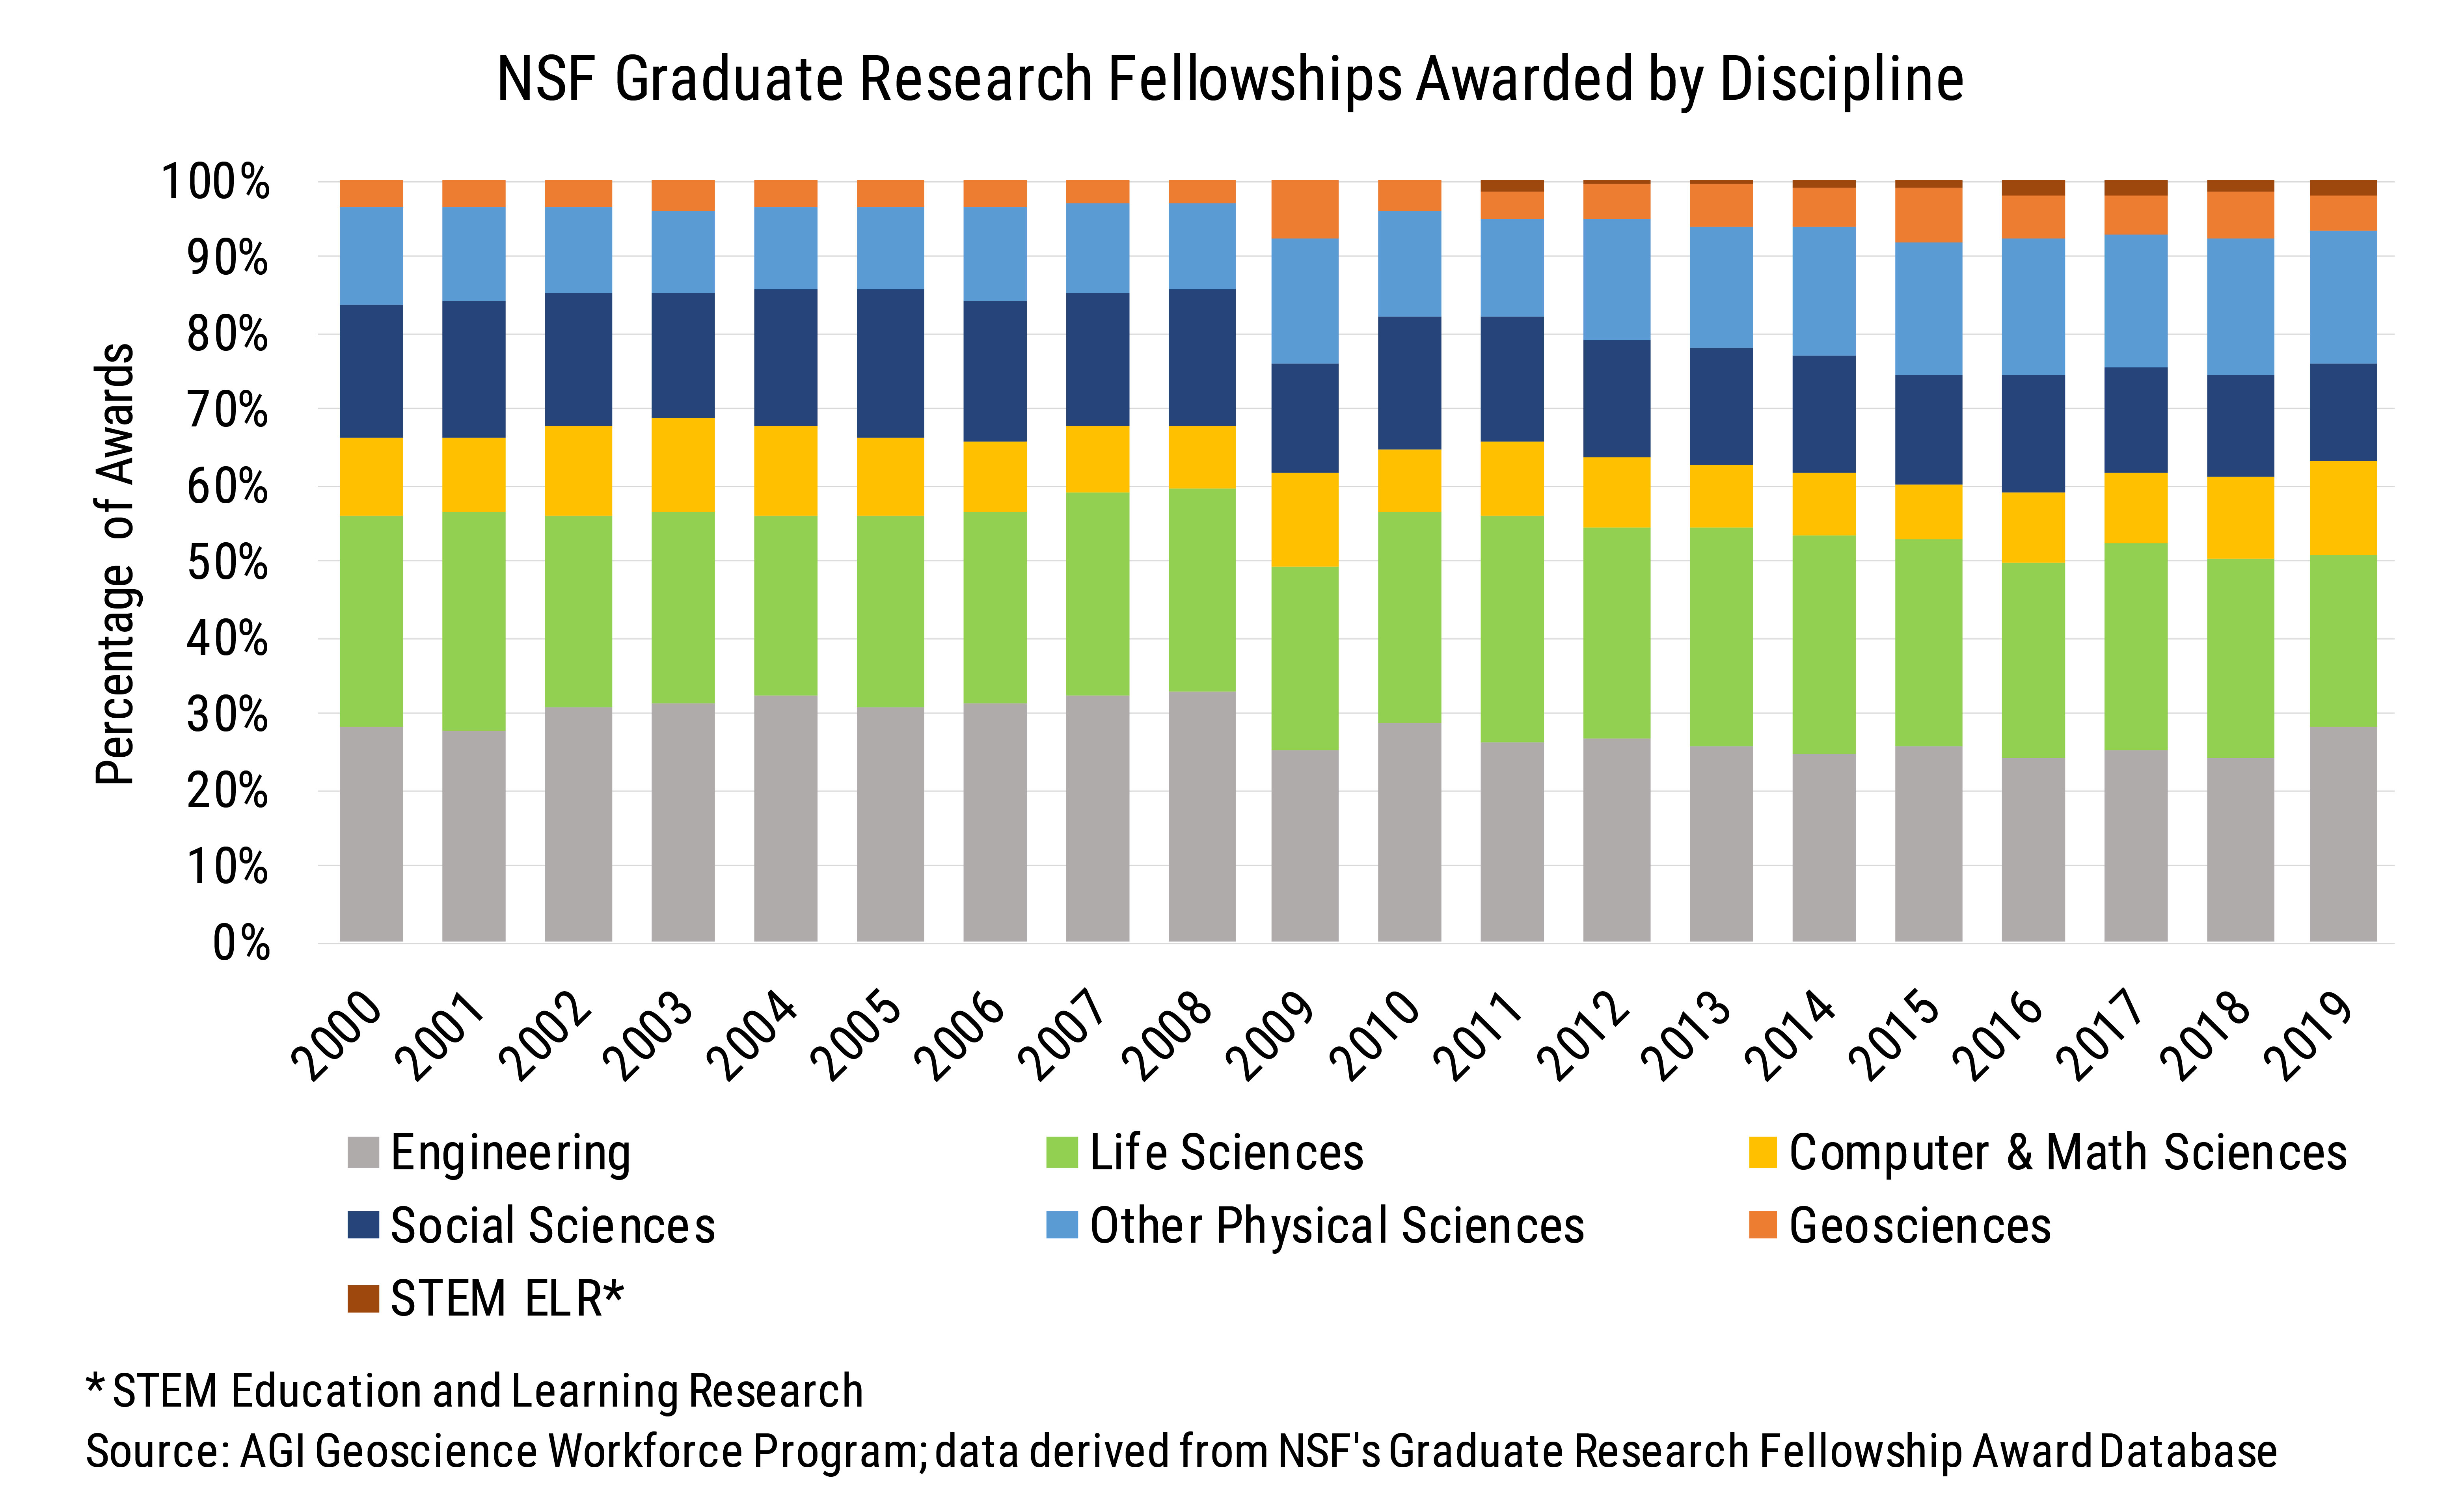 Data Brief 2009-009 chart01: NSF Graduate Research Fellowships Awarded by Discipline